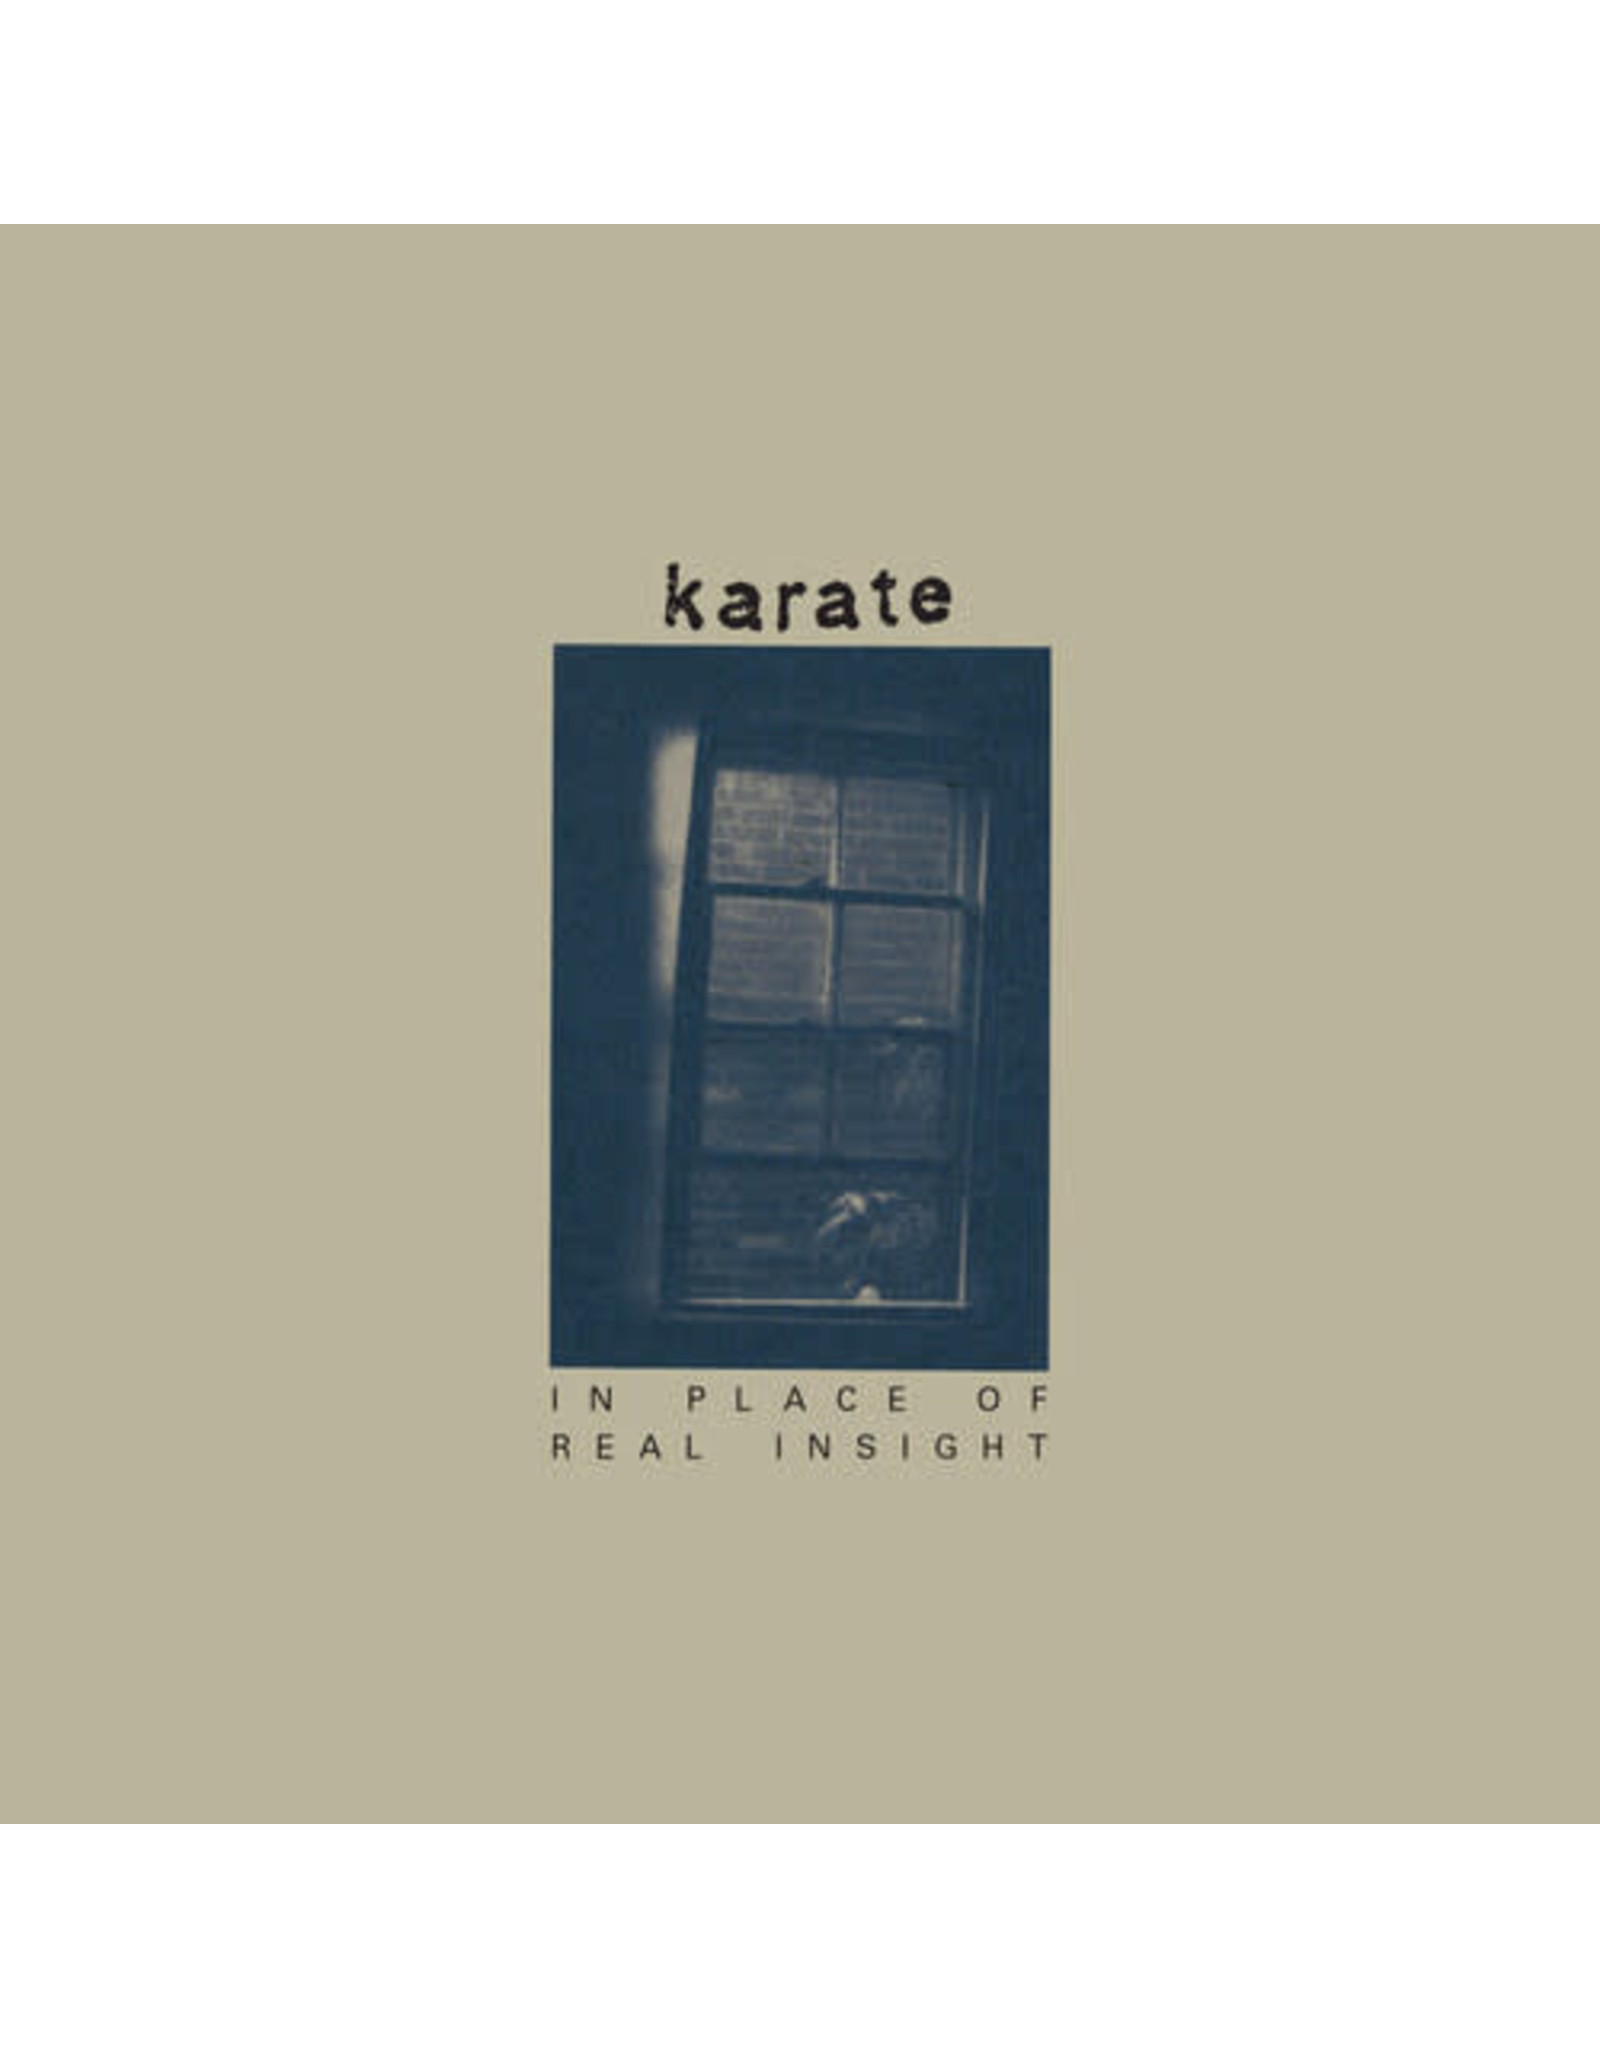 Karate / In Place Of Real Insight